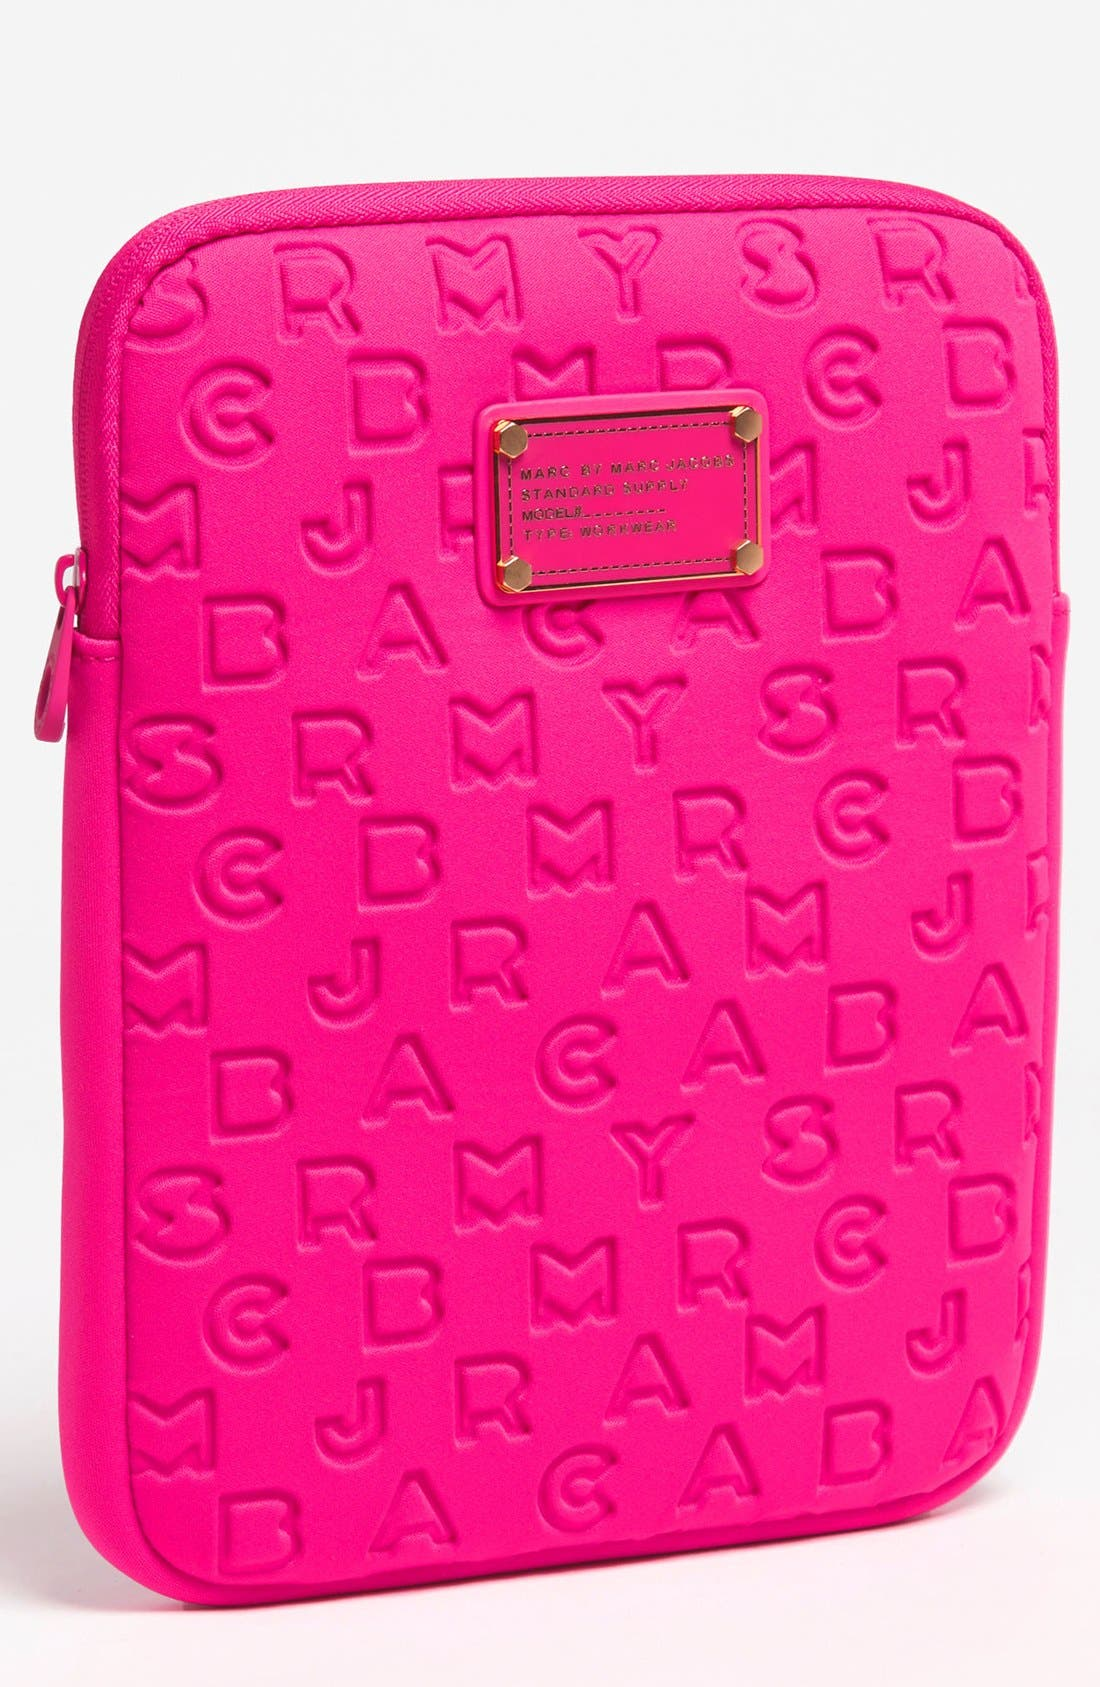 Main Image - MARC BY MARC JACOBS 'Dreamy' Neoprene Tablet Case